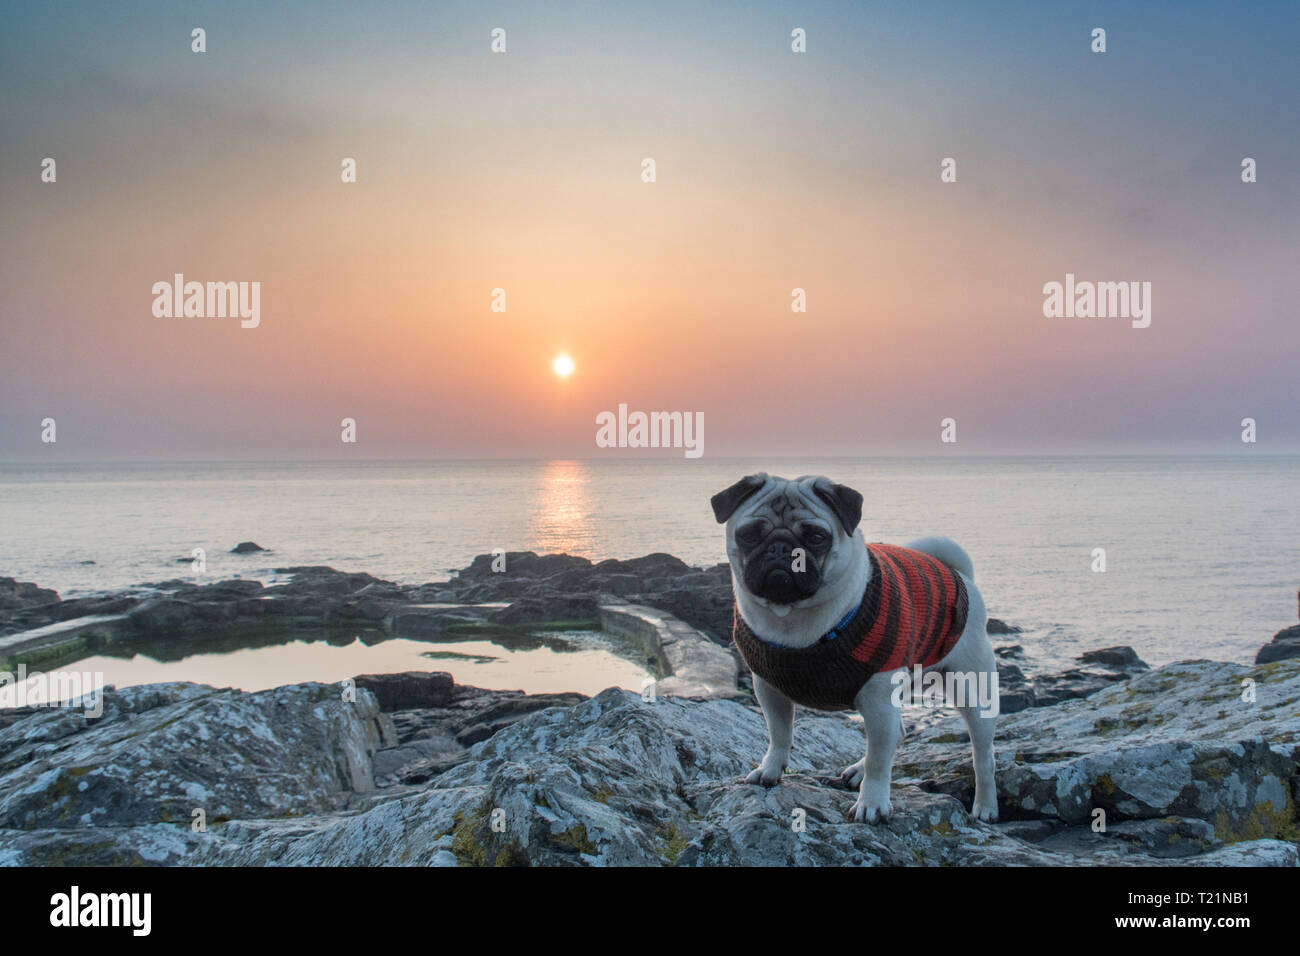 Mousehole, Cornwall, UK. 30th Mar, 2019. UK Weather. Early morning mist soon lifted at sunrise, with the promise of another fine day ahead for south west Cornwall. Titan the pug out on the rocky beach for his morning walk. Credit: Simon Maycock/Alamy Live News Stock Photo